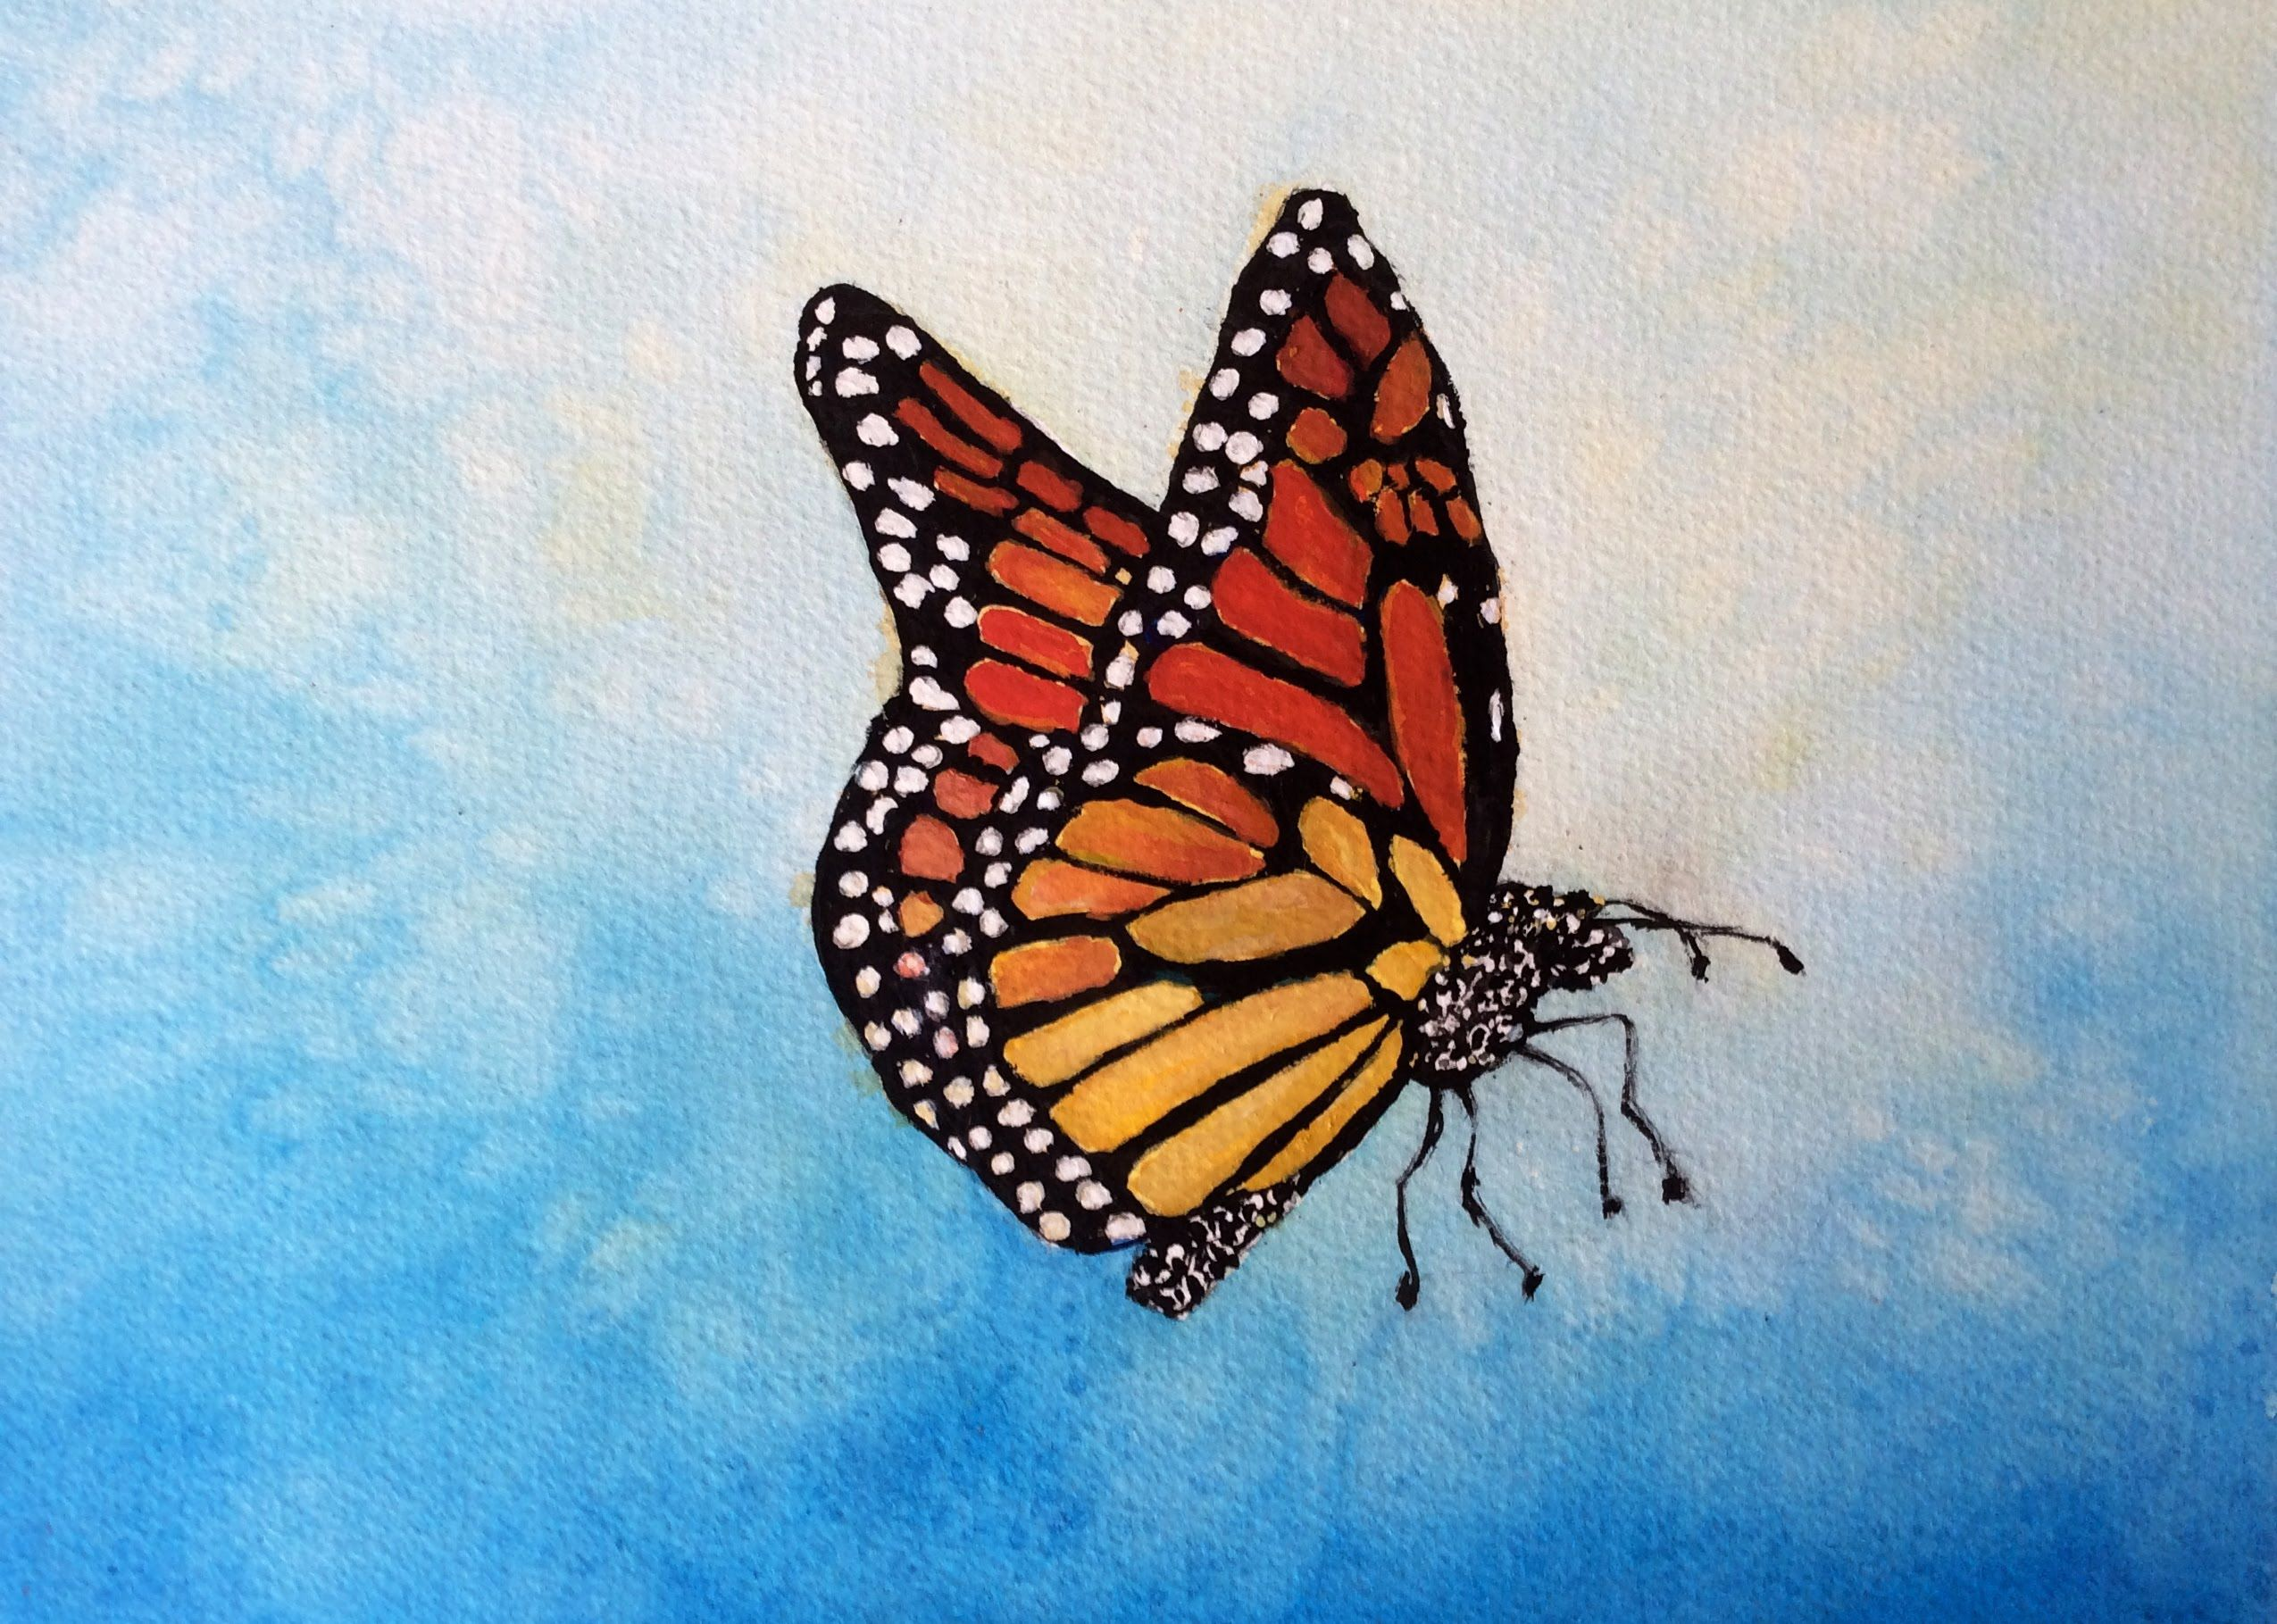 How To Paint A Monarch Butterfly With Watercolor Step By